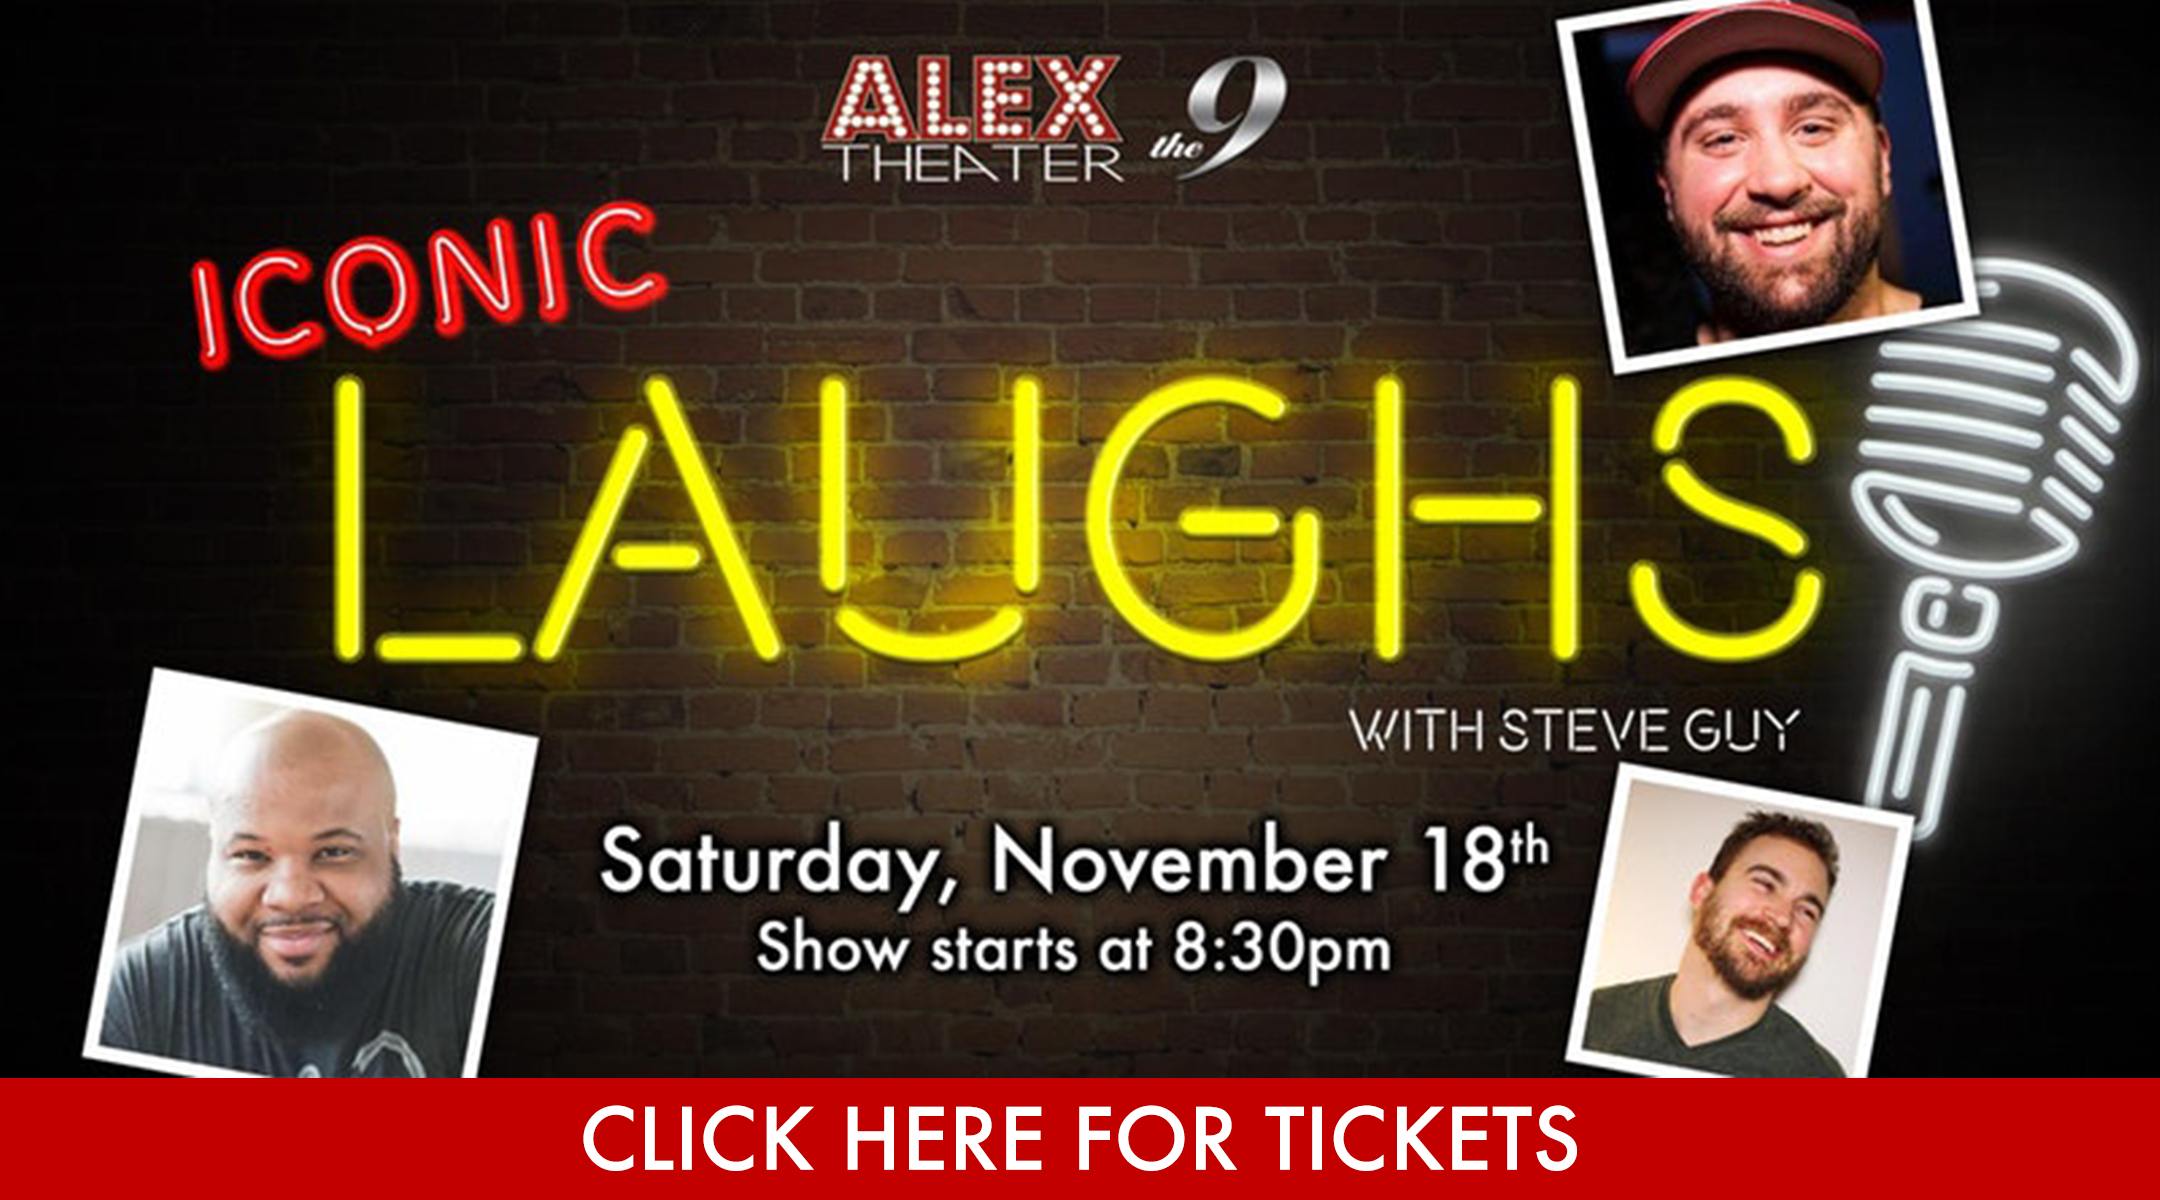 IconicLaughs-1118-tickets.png